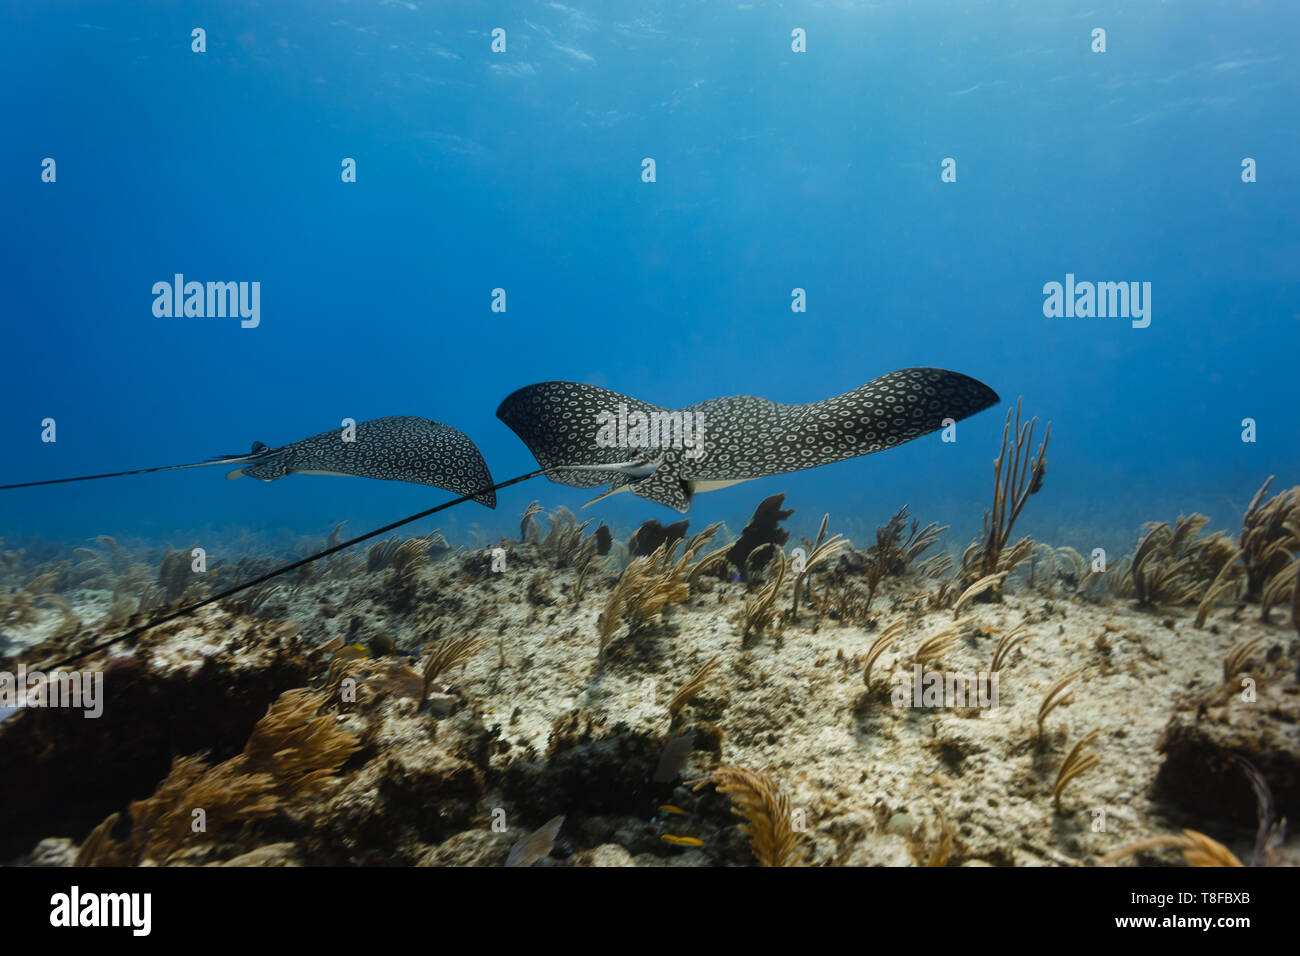 Pair of giant spotted eagle rays, ,Aetobatus narinari,  glide across colorful coral reef displaying intricate pattern on their backs Stock Photo